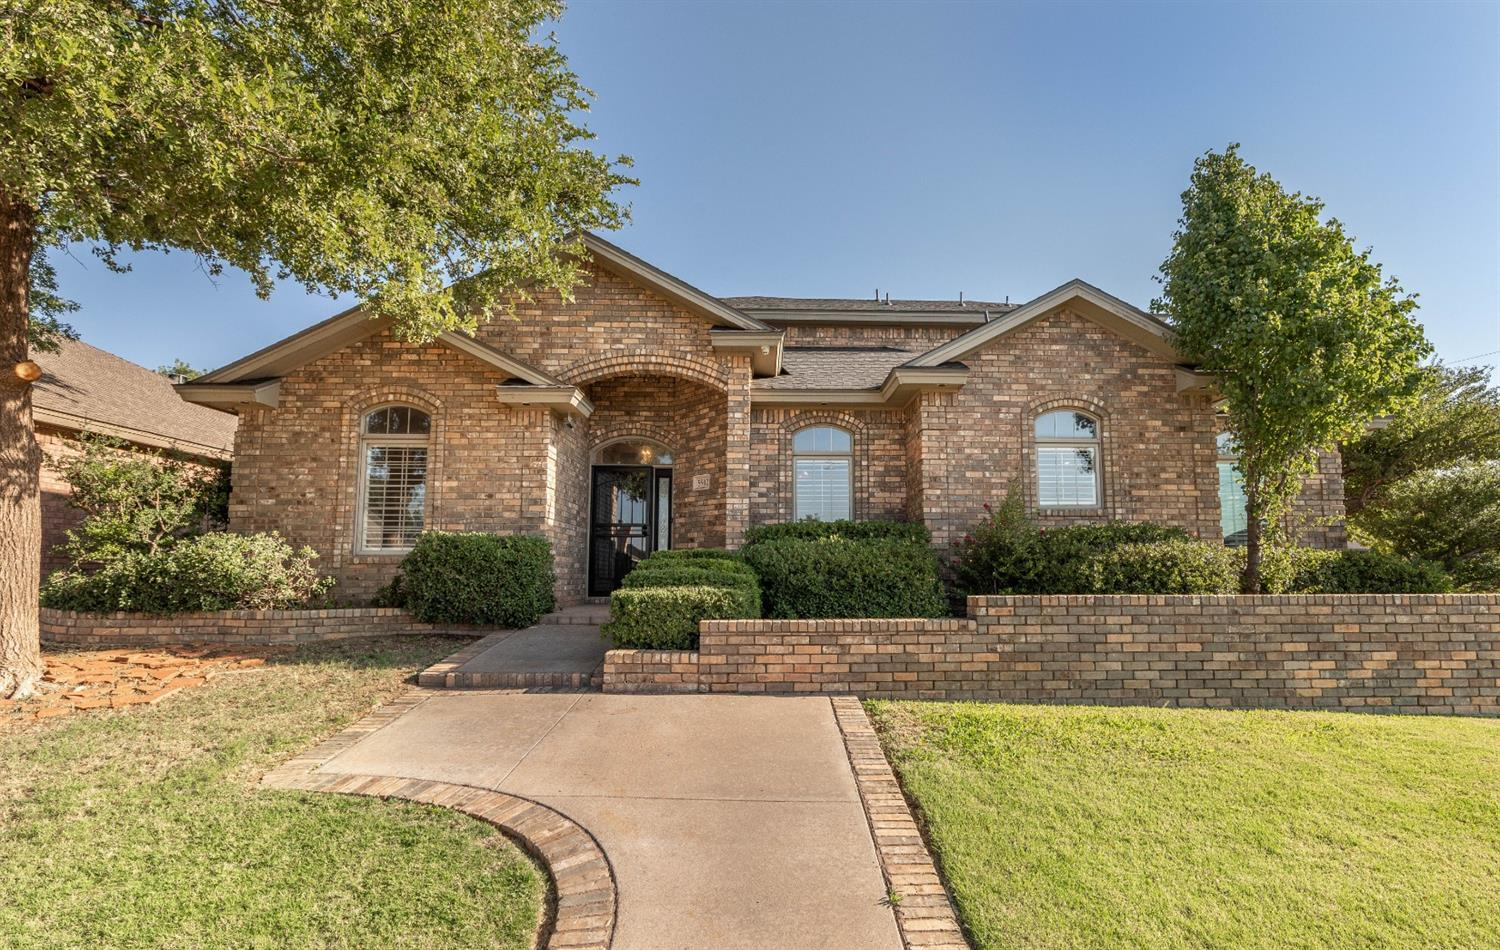 Beautiful home in Lubbock-Cooper ISD. Custom built in 2001 by Gerald Long and recently updated carpet, paint, plank flooring, new appliances, and new roof! Great floor plan with 2 dining areas, basement, covered patio, and beautiful landscaping! Call to see this one before it is gone!